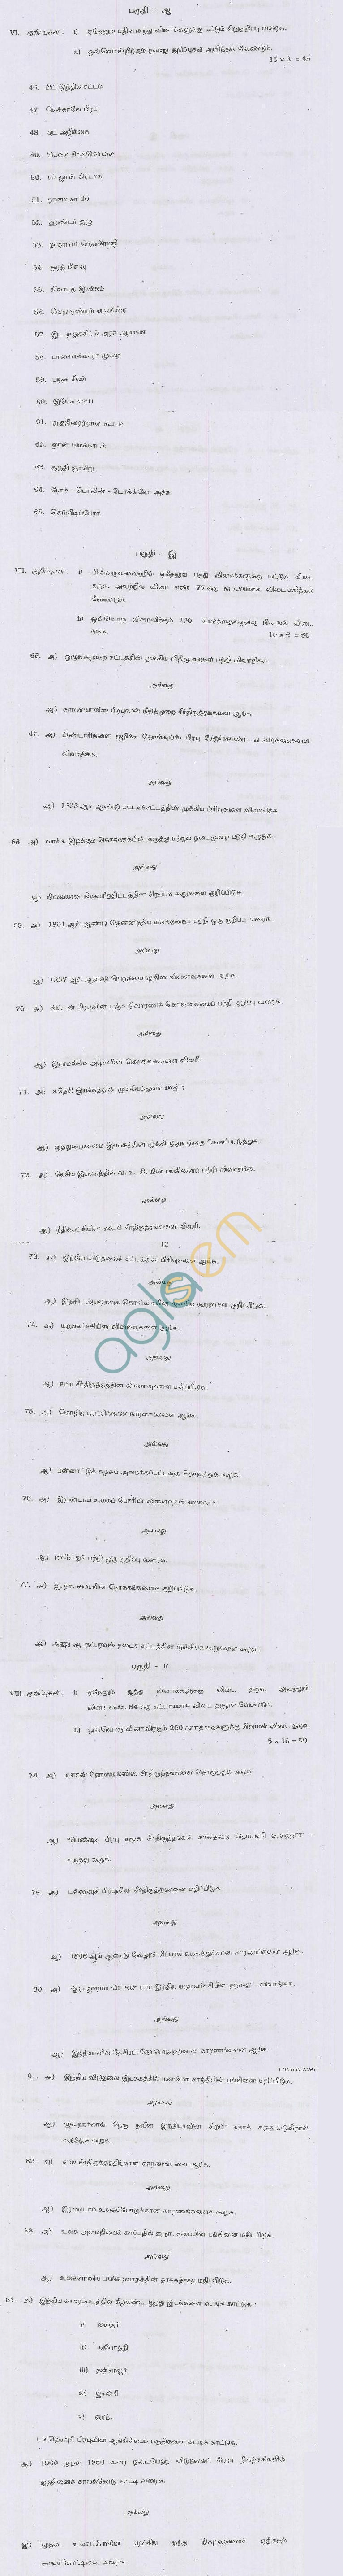 TN Board Higher Secondary (Plus 2)HistoryQuestion PapersSeptember 2011